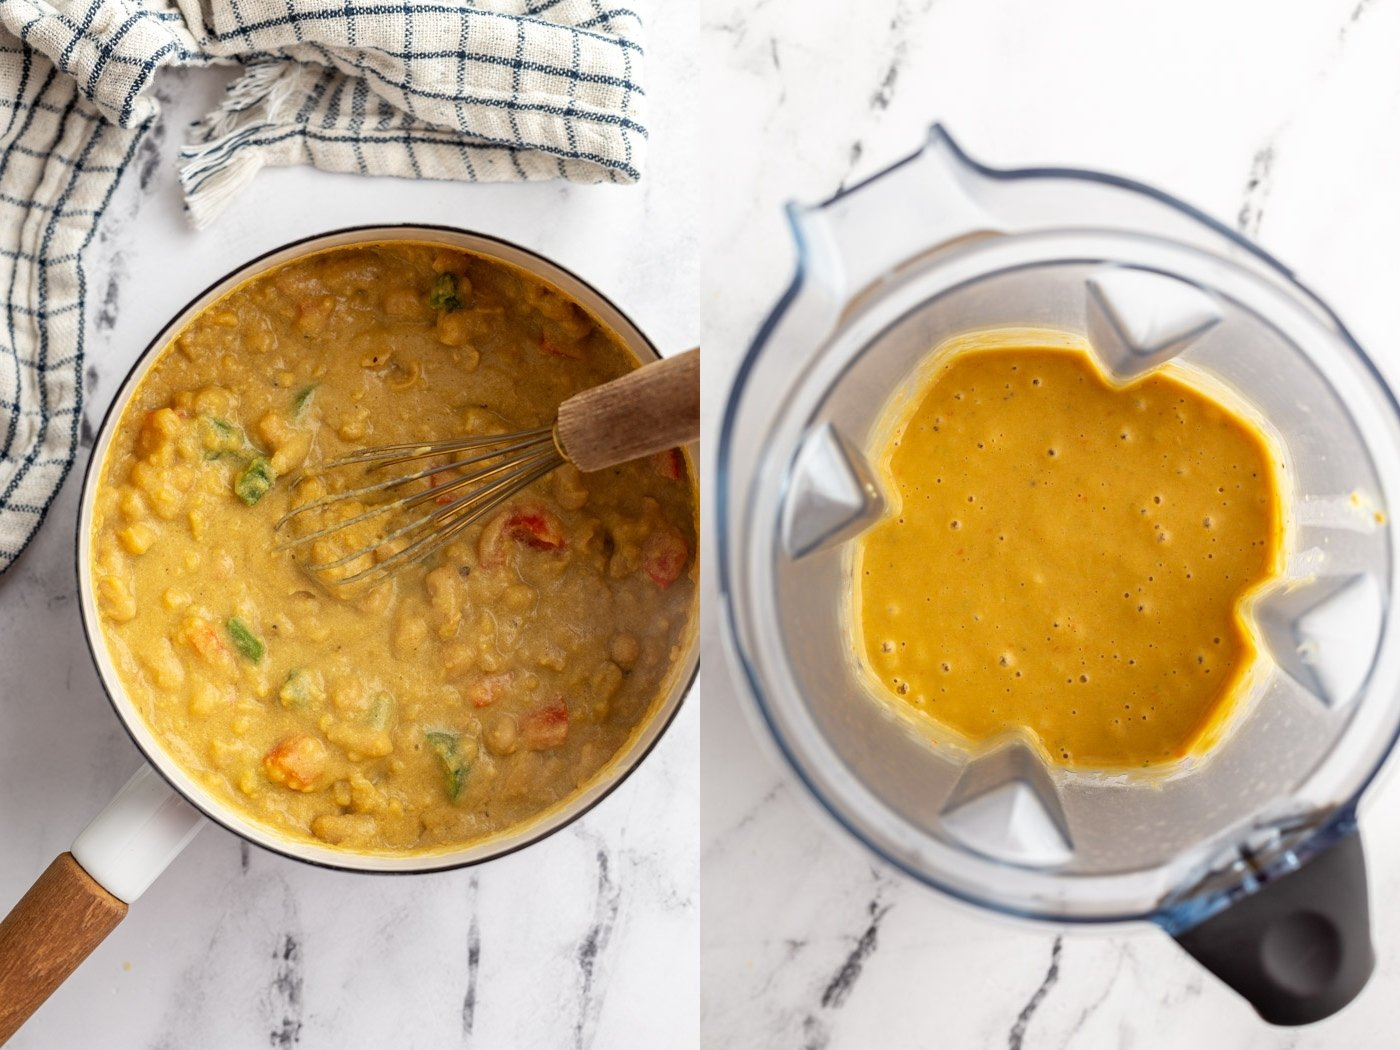 side by side images. Left: vegan ingredients for salsa con queso in a pot. Right image: those same ingredients in a blender base and all blended up